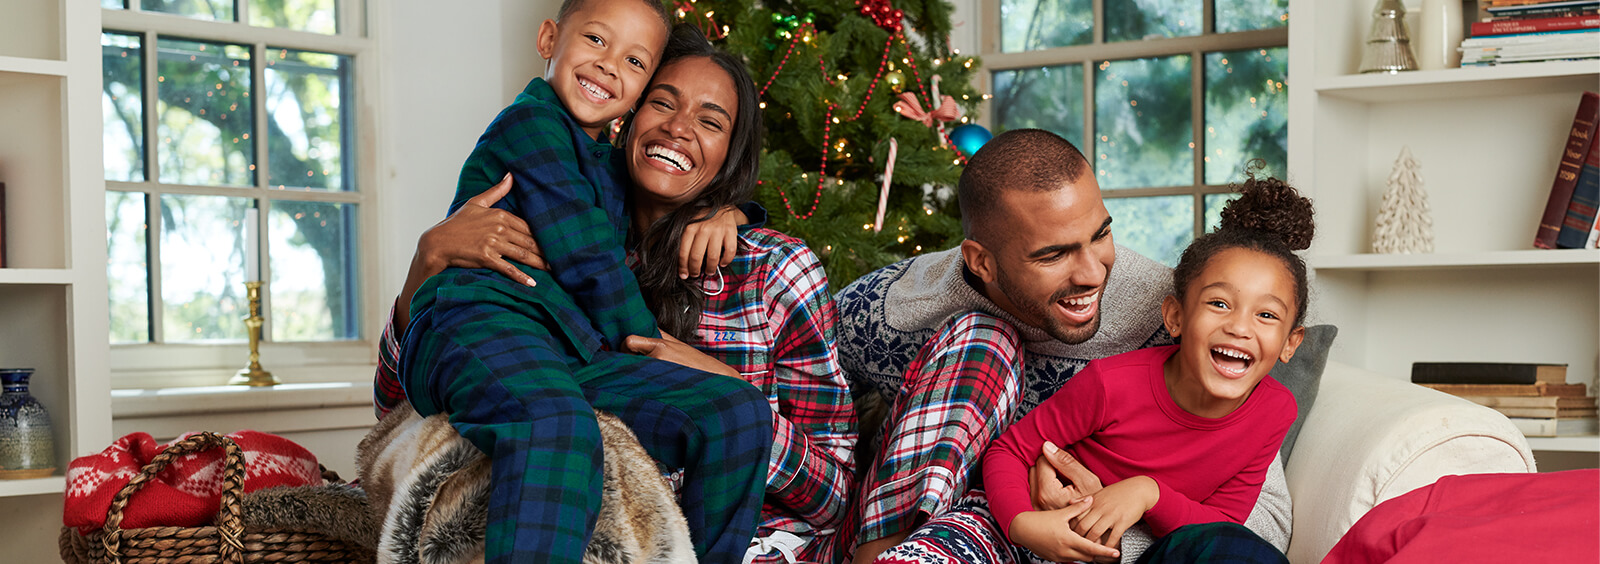 Flannel Pajamas for the whole family